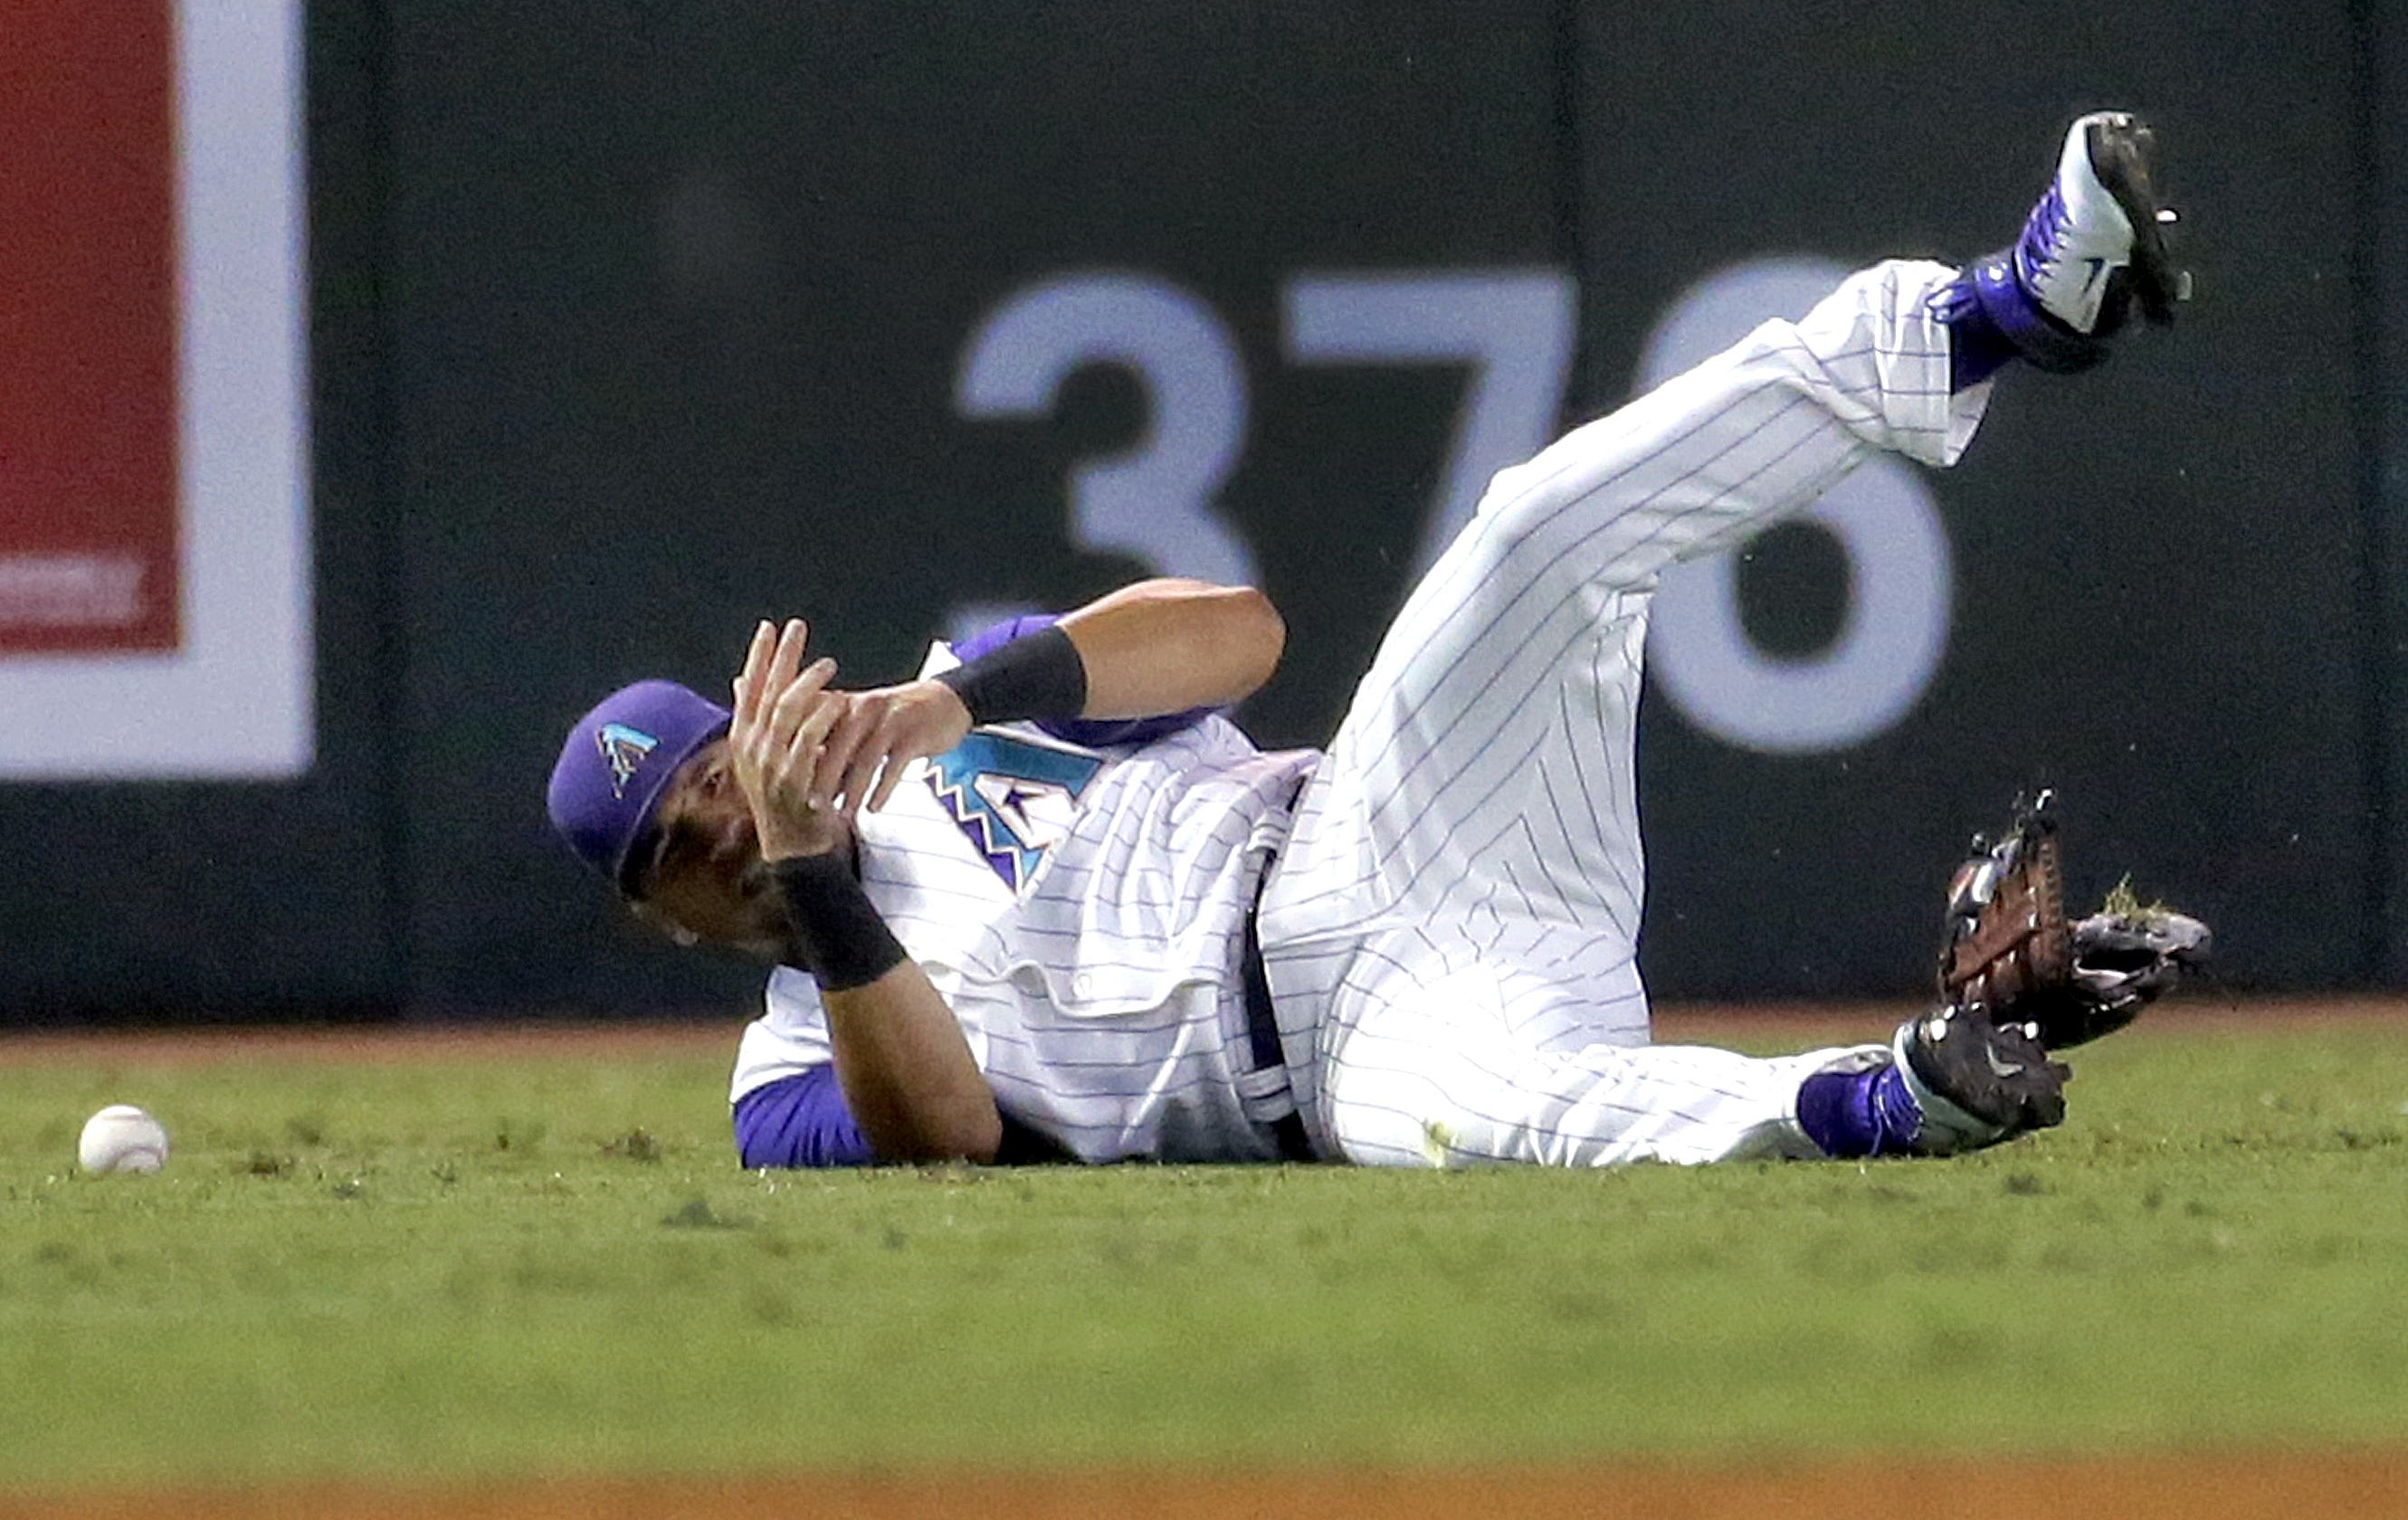 Arizona Diamondbacks' David Peralta grabs his wrist after being injured trying to catch a base hit by Colorado Rockies' Rafael Ynoa during the fourth inning of a baseball game, Thursday, Oct. 1, 2015, in Phoenix. Peralta left the game at the end of the in